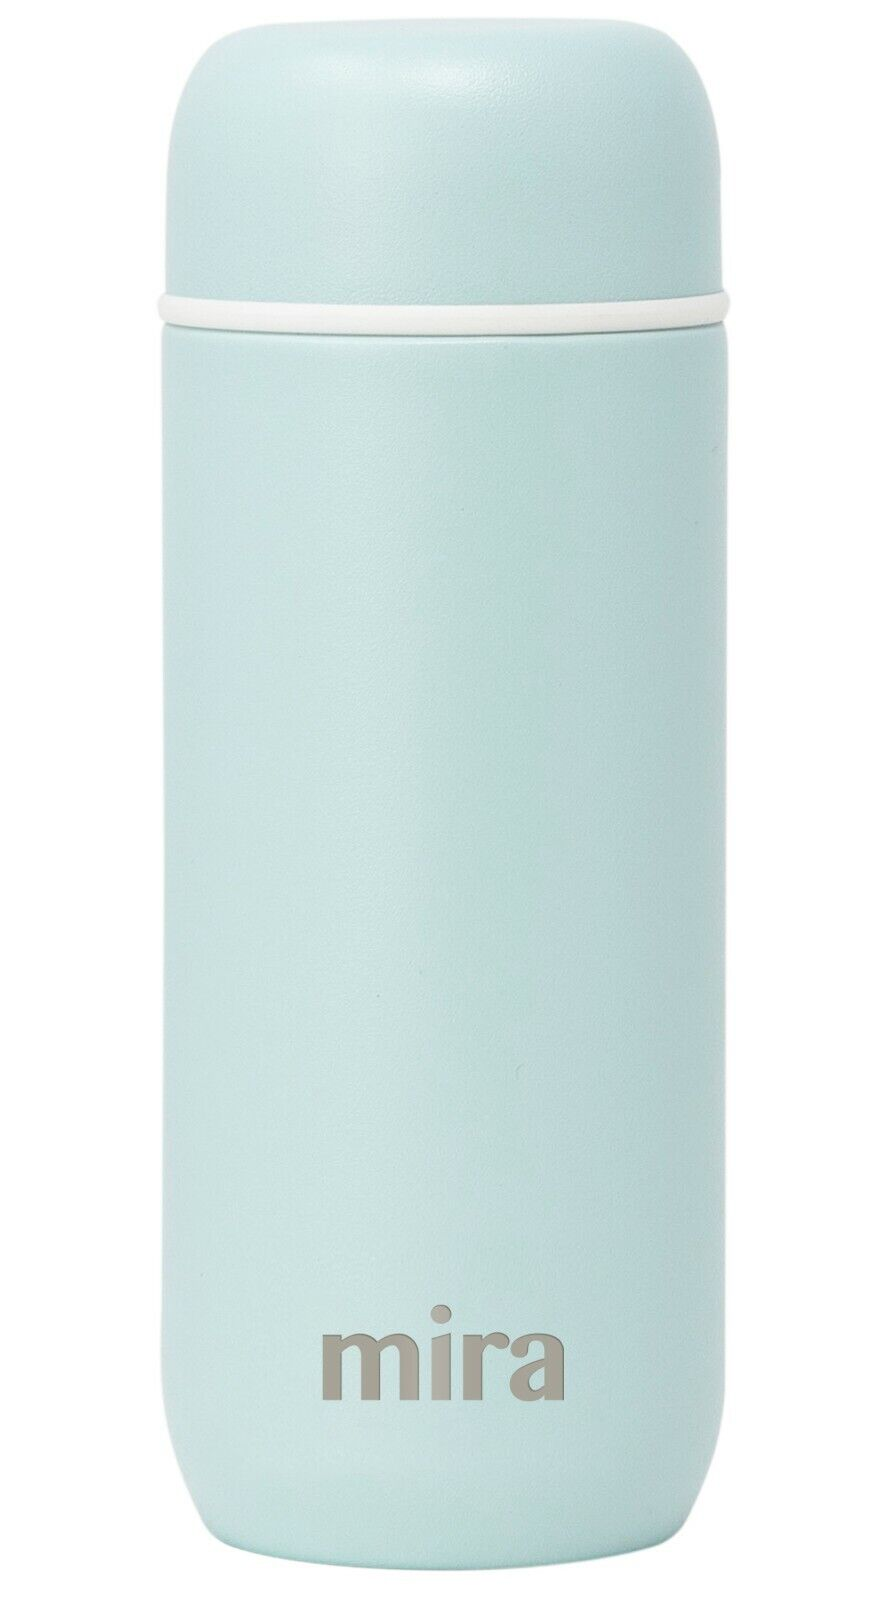 Mira Insulated Bullet Thermos Flask Kids Vacuum Insulated Wa